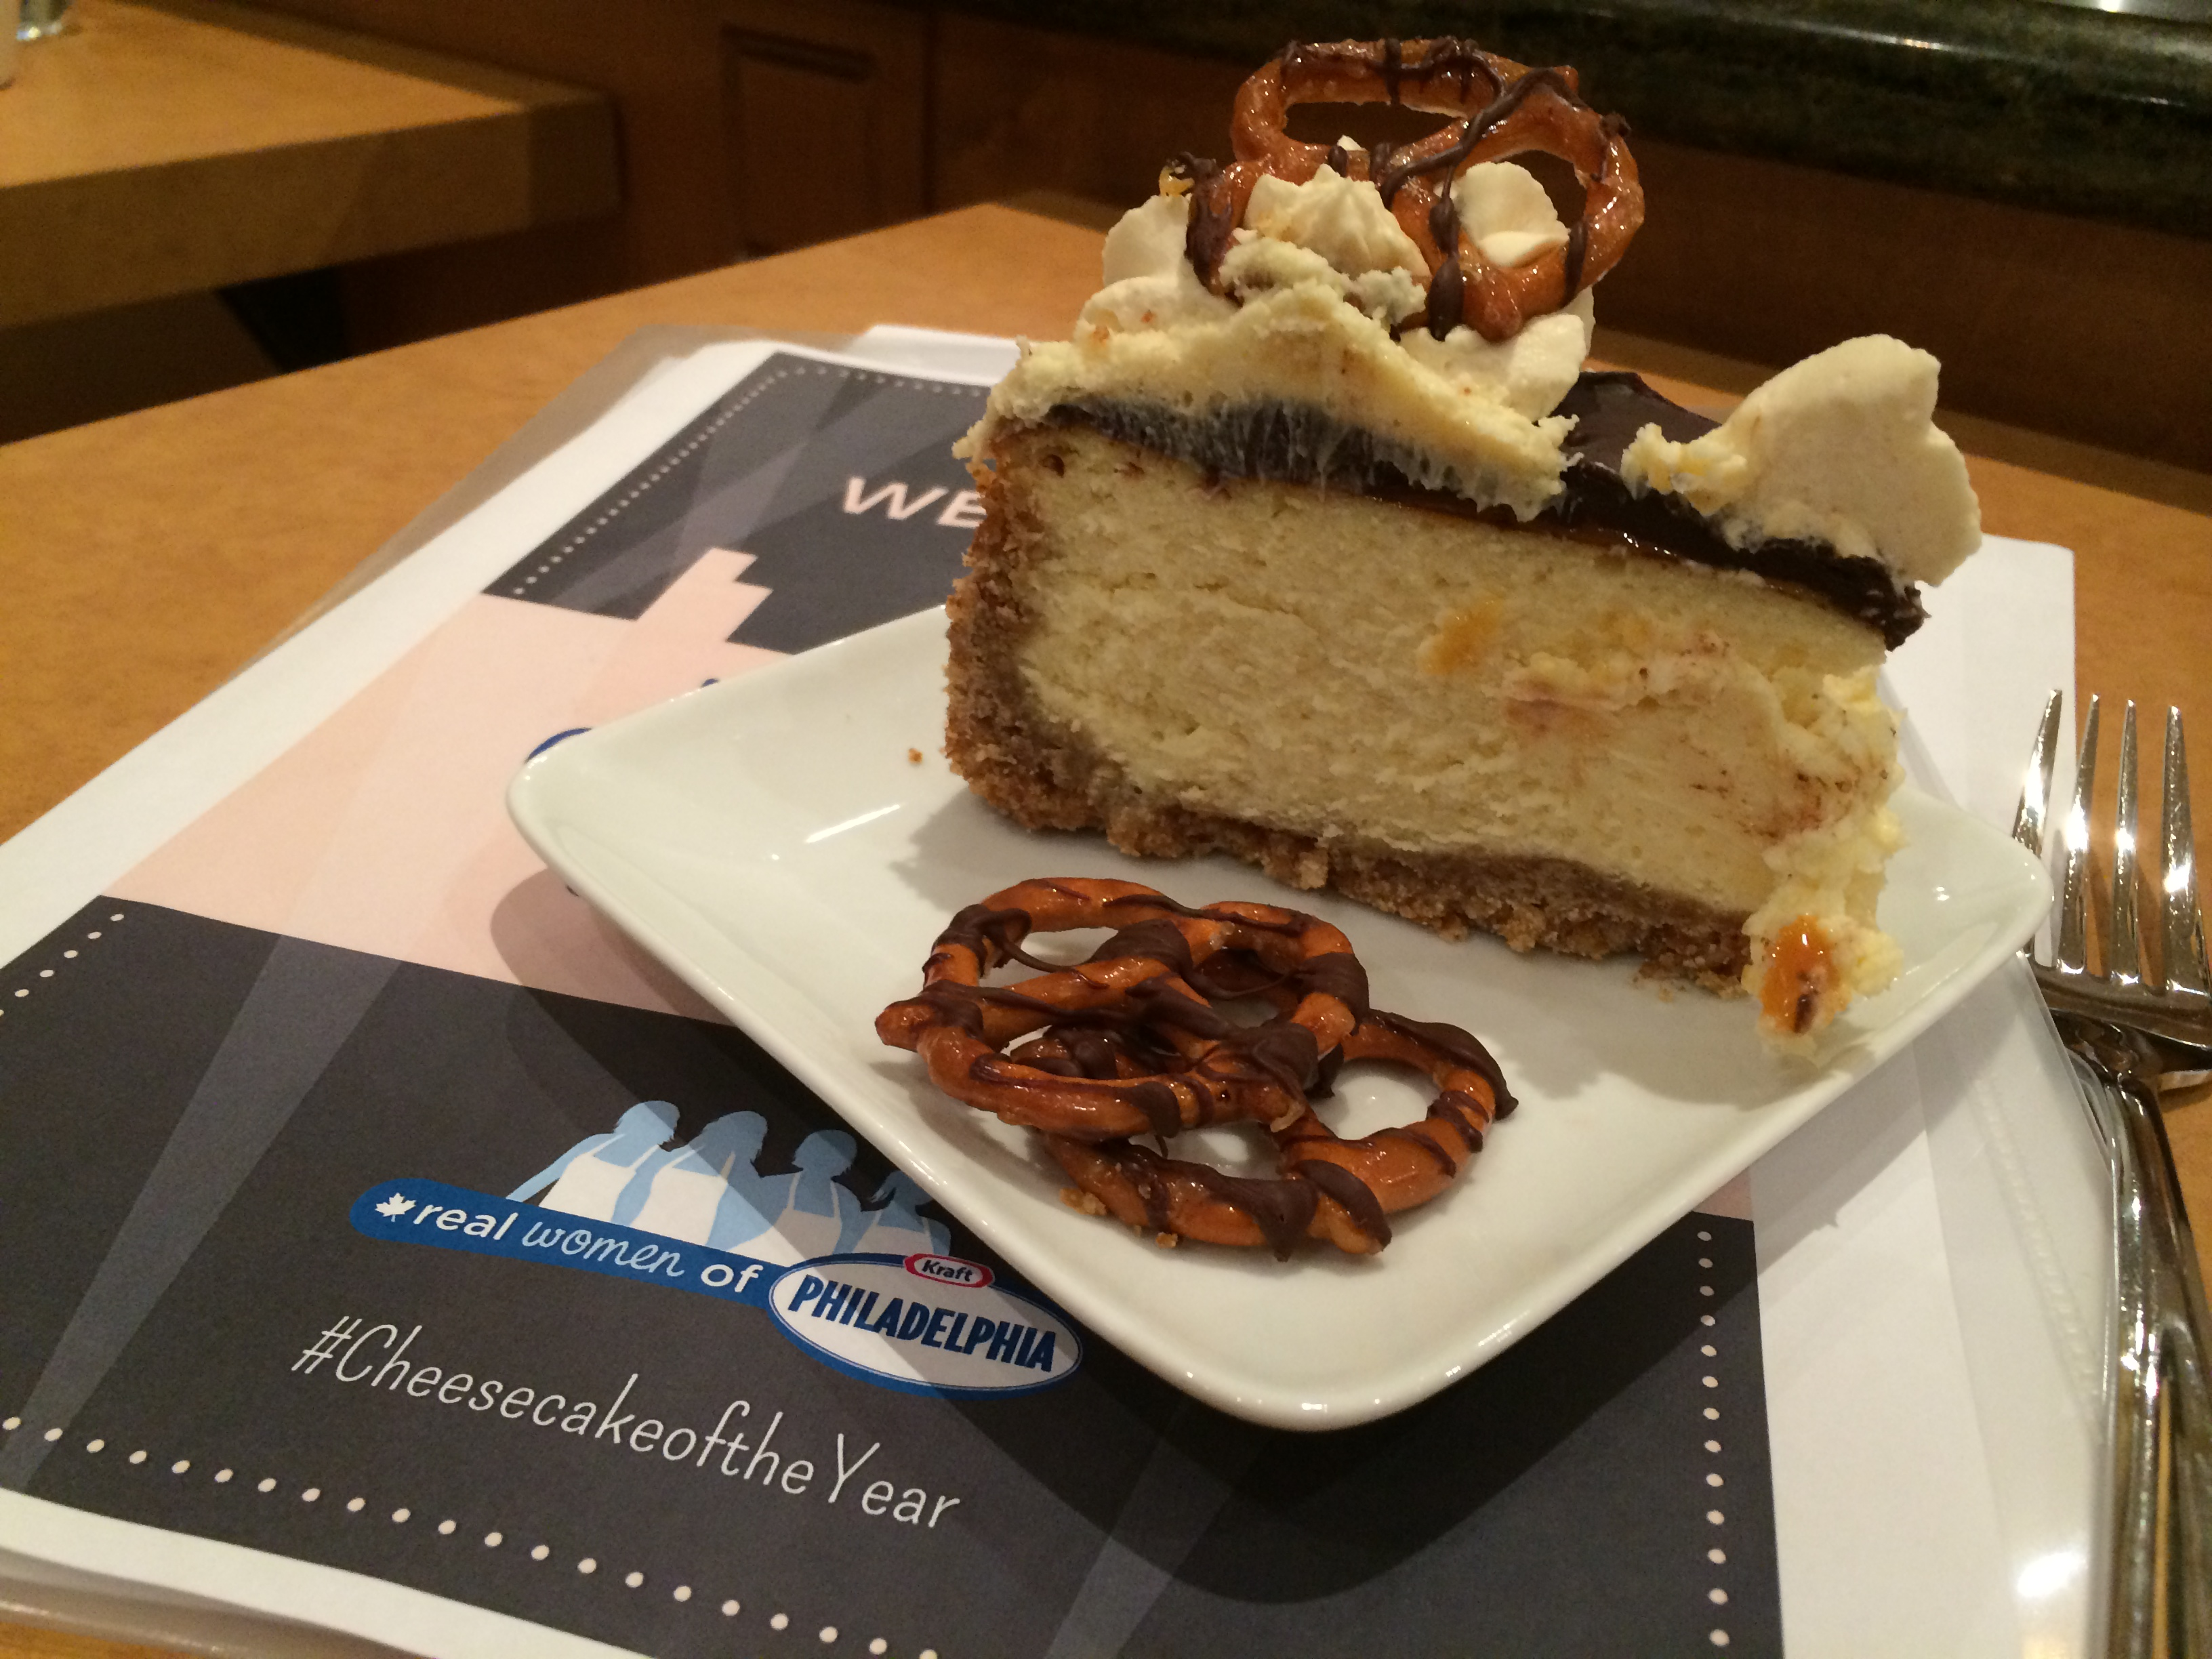 Who Won The Cheesecake Of The Year?